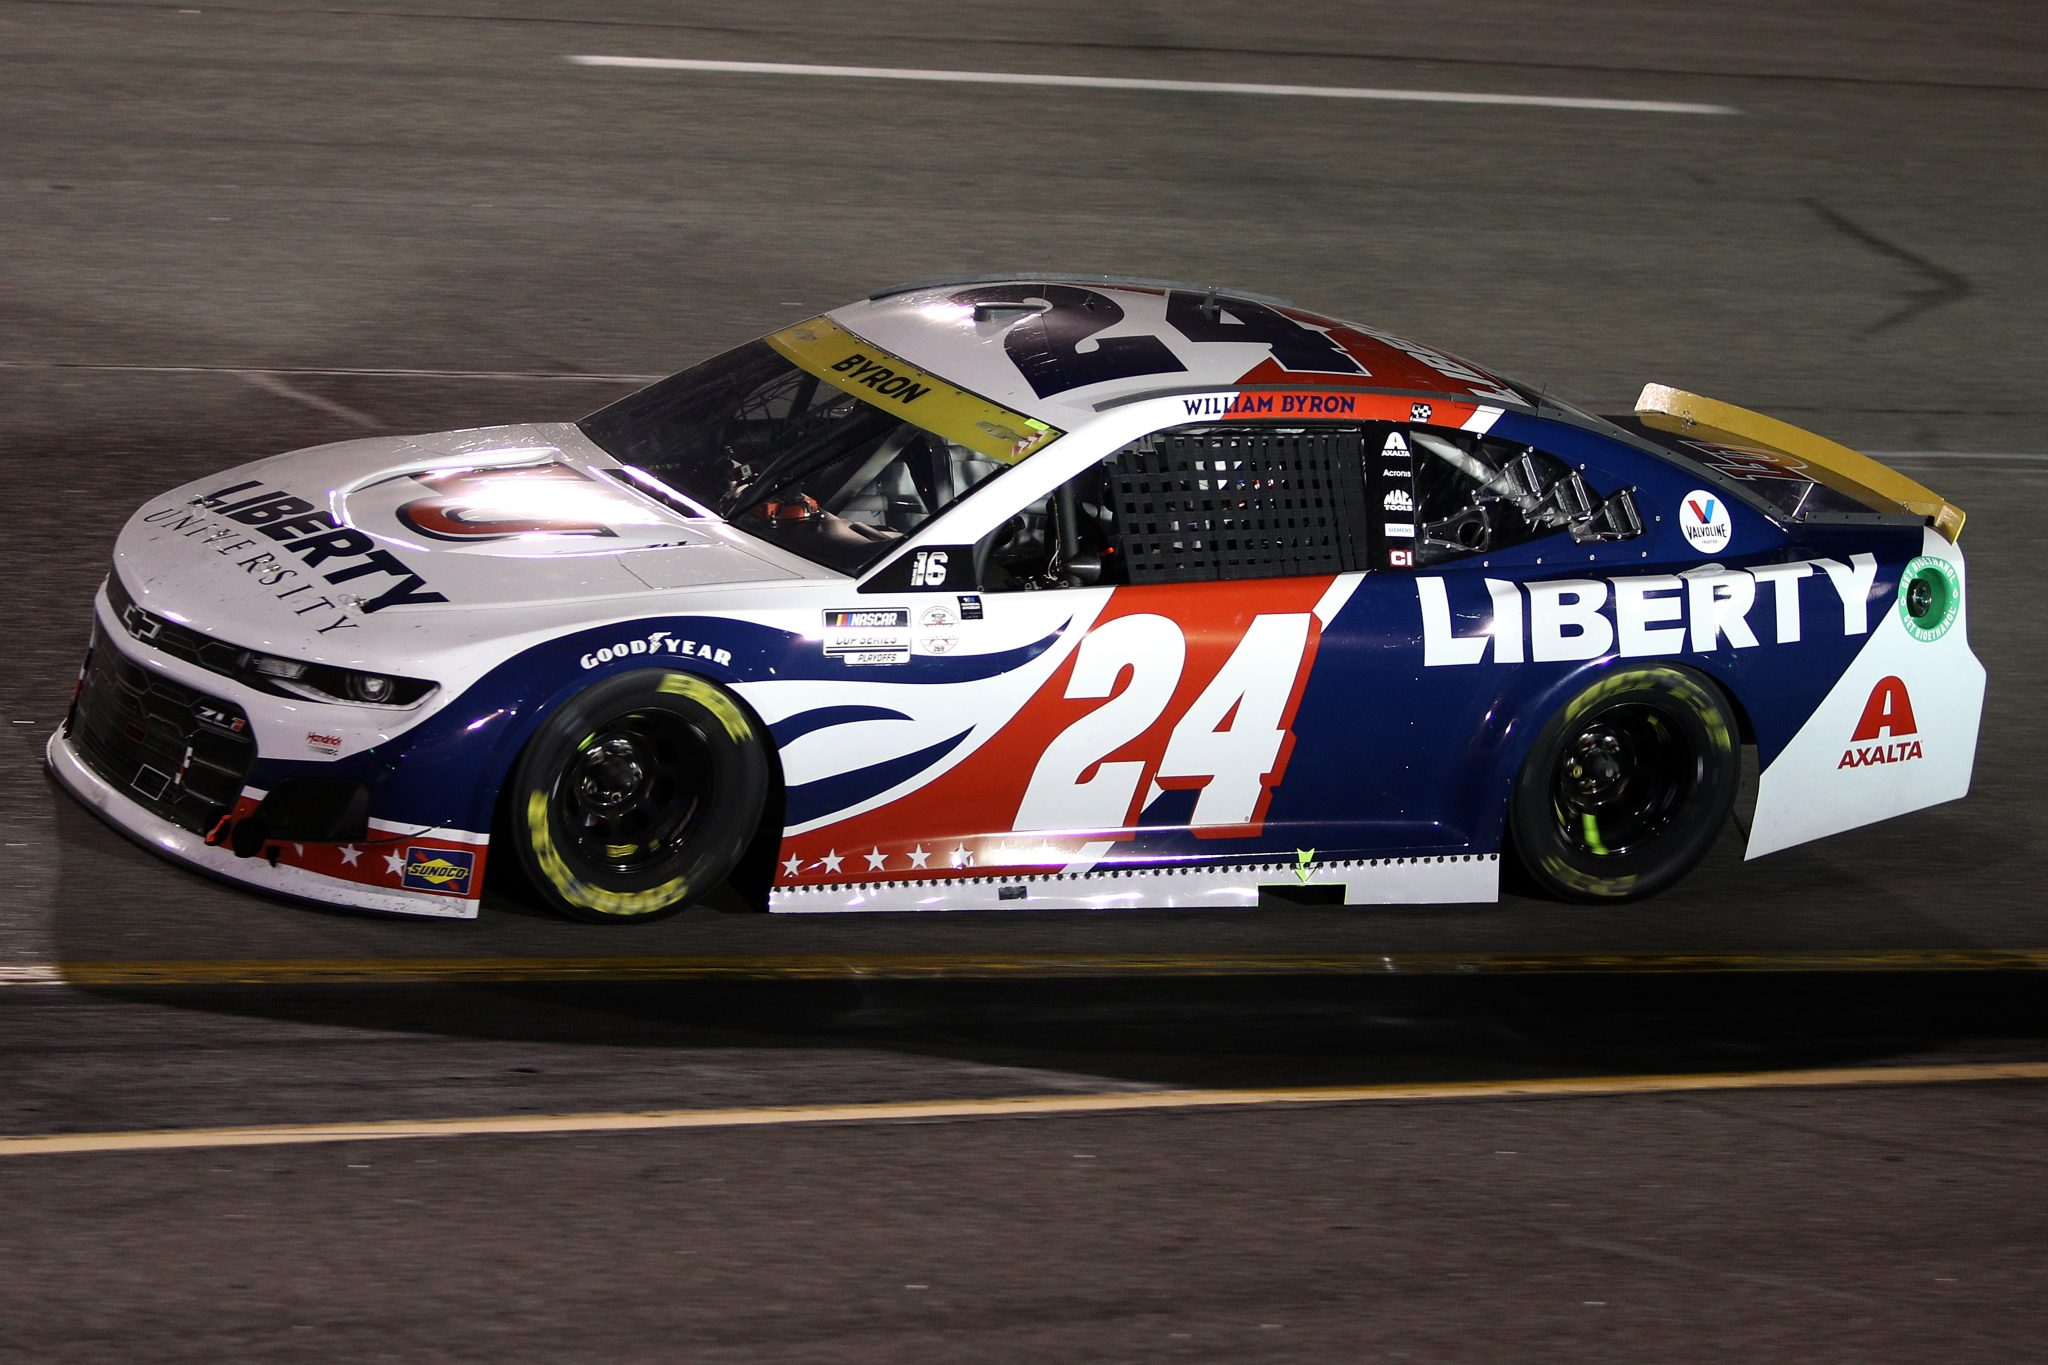 RICHMOND, VIRGINIA - SEPTEMBER 11: William Byron, driver of the #24 Liberty University Chevrolet, drives during the NASCAR Cup Series Federated Auto Parts 400 Salute to First Responders at Richmond Raceway on September 11, 2021 in Richmond, Virginia. (Photo by Sean Gardner/Getty Images)   Getty Images